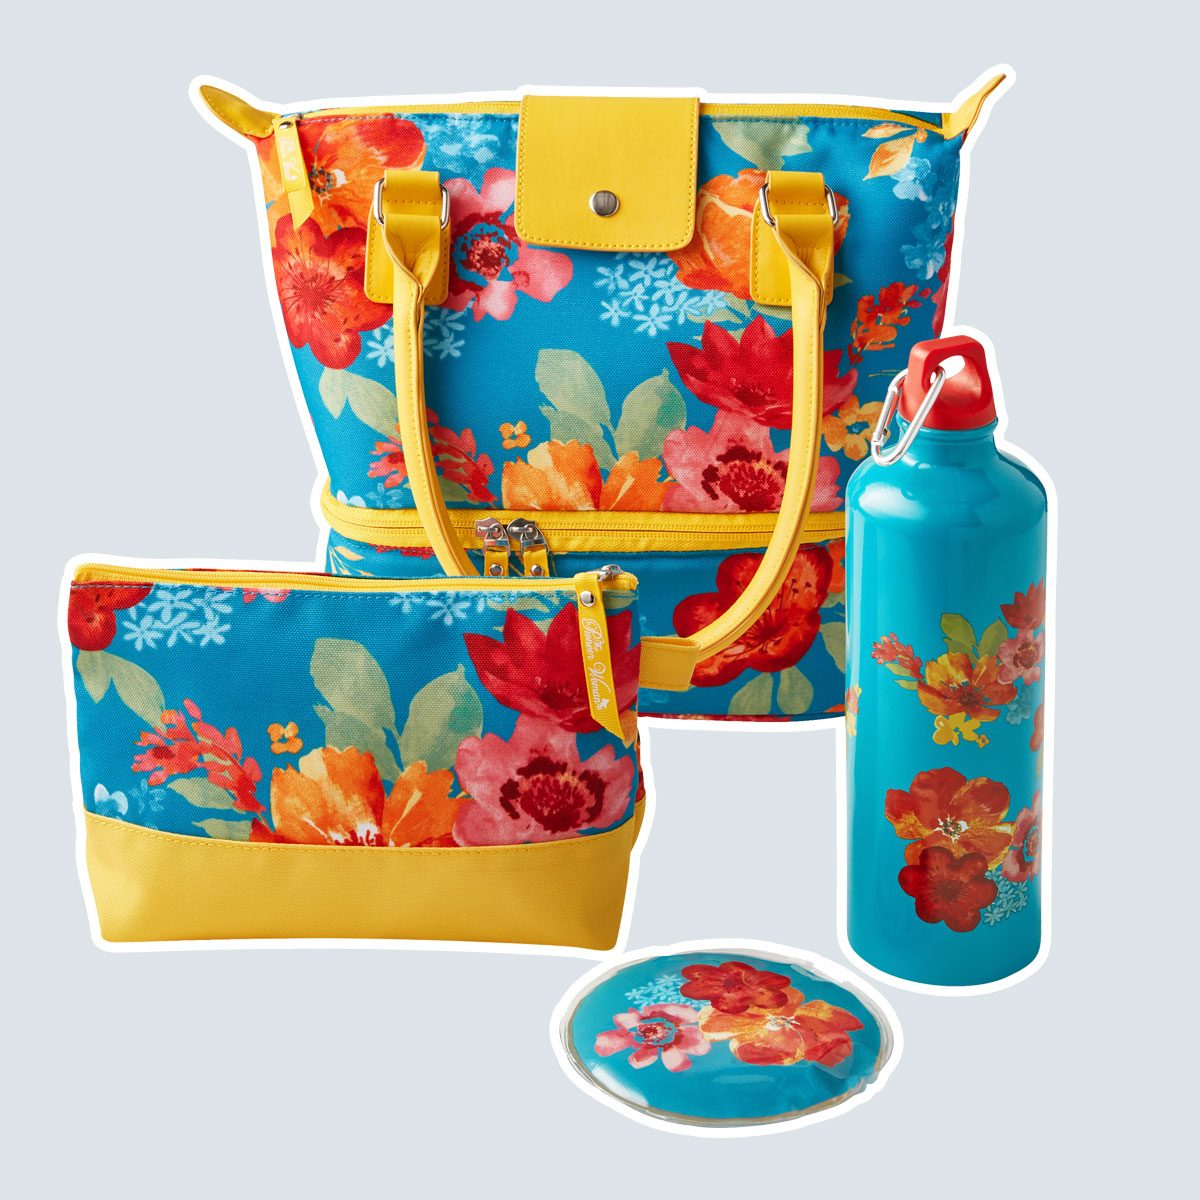 The Pioneer Woman 4 Piece Insulated Lunch Kit, Wildflower Whimsy